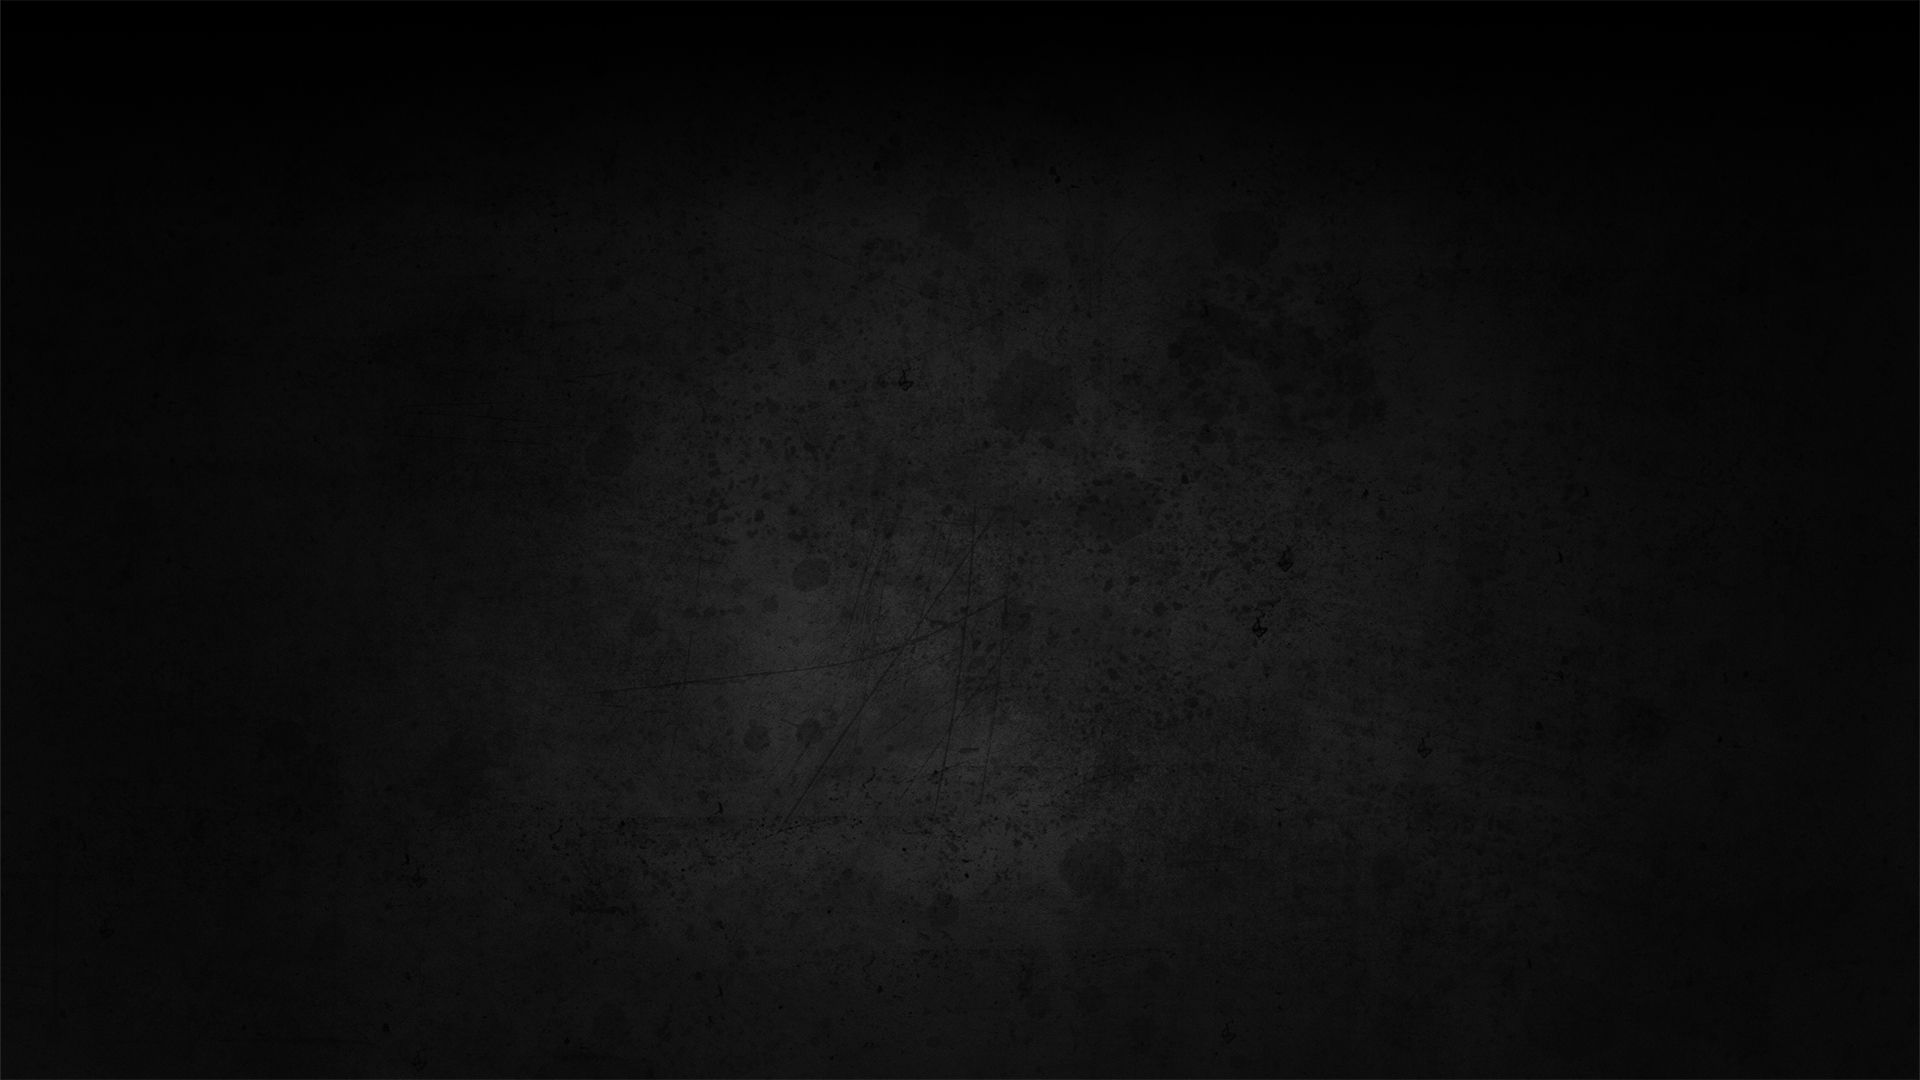 Plain Black Wallpapers (22+ images